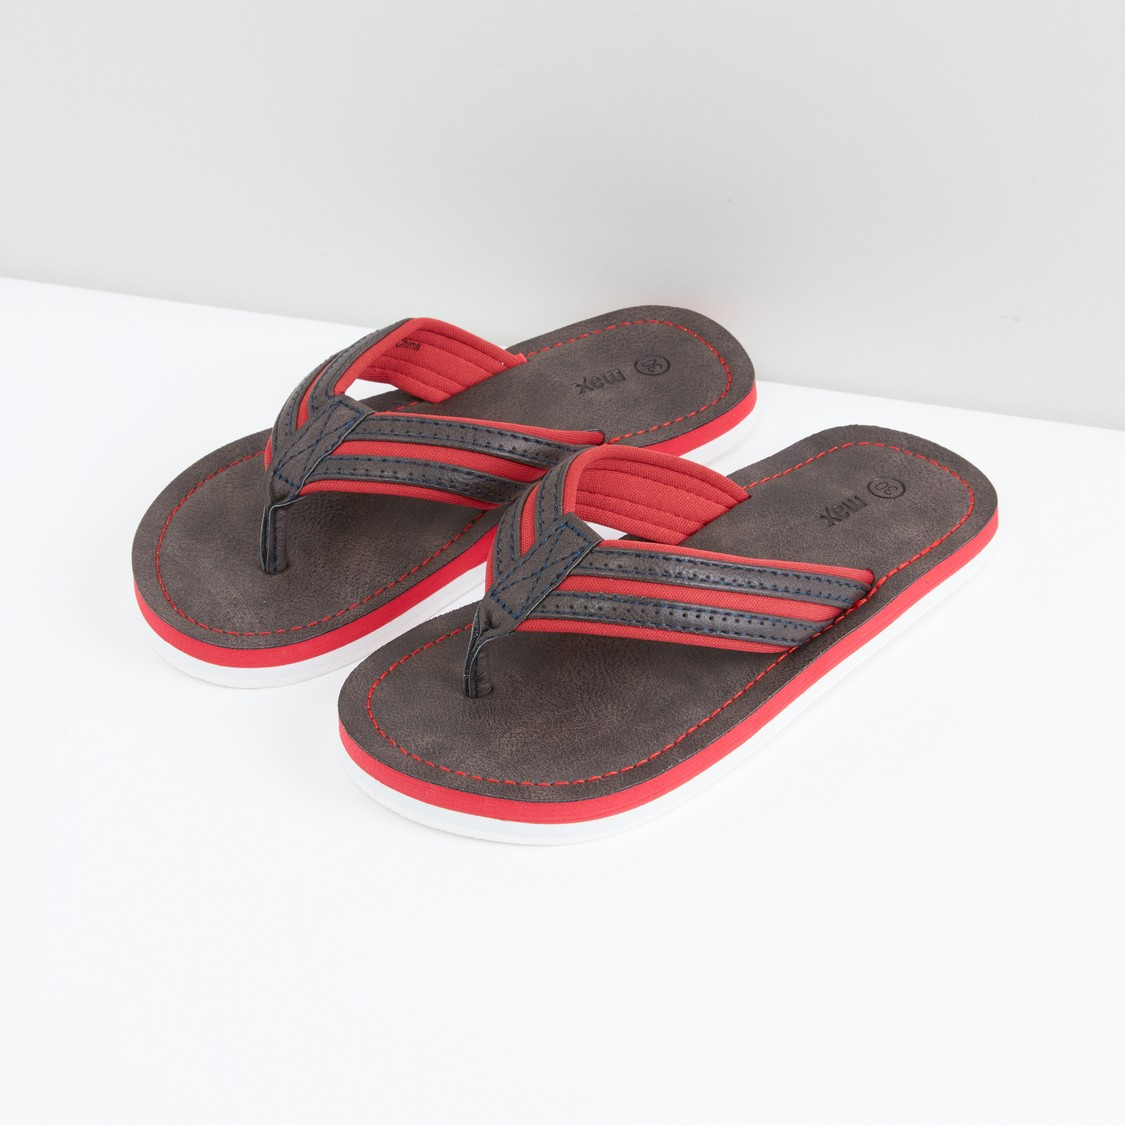 Textured Stitch Detail Flip Flops with Broad Straps